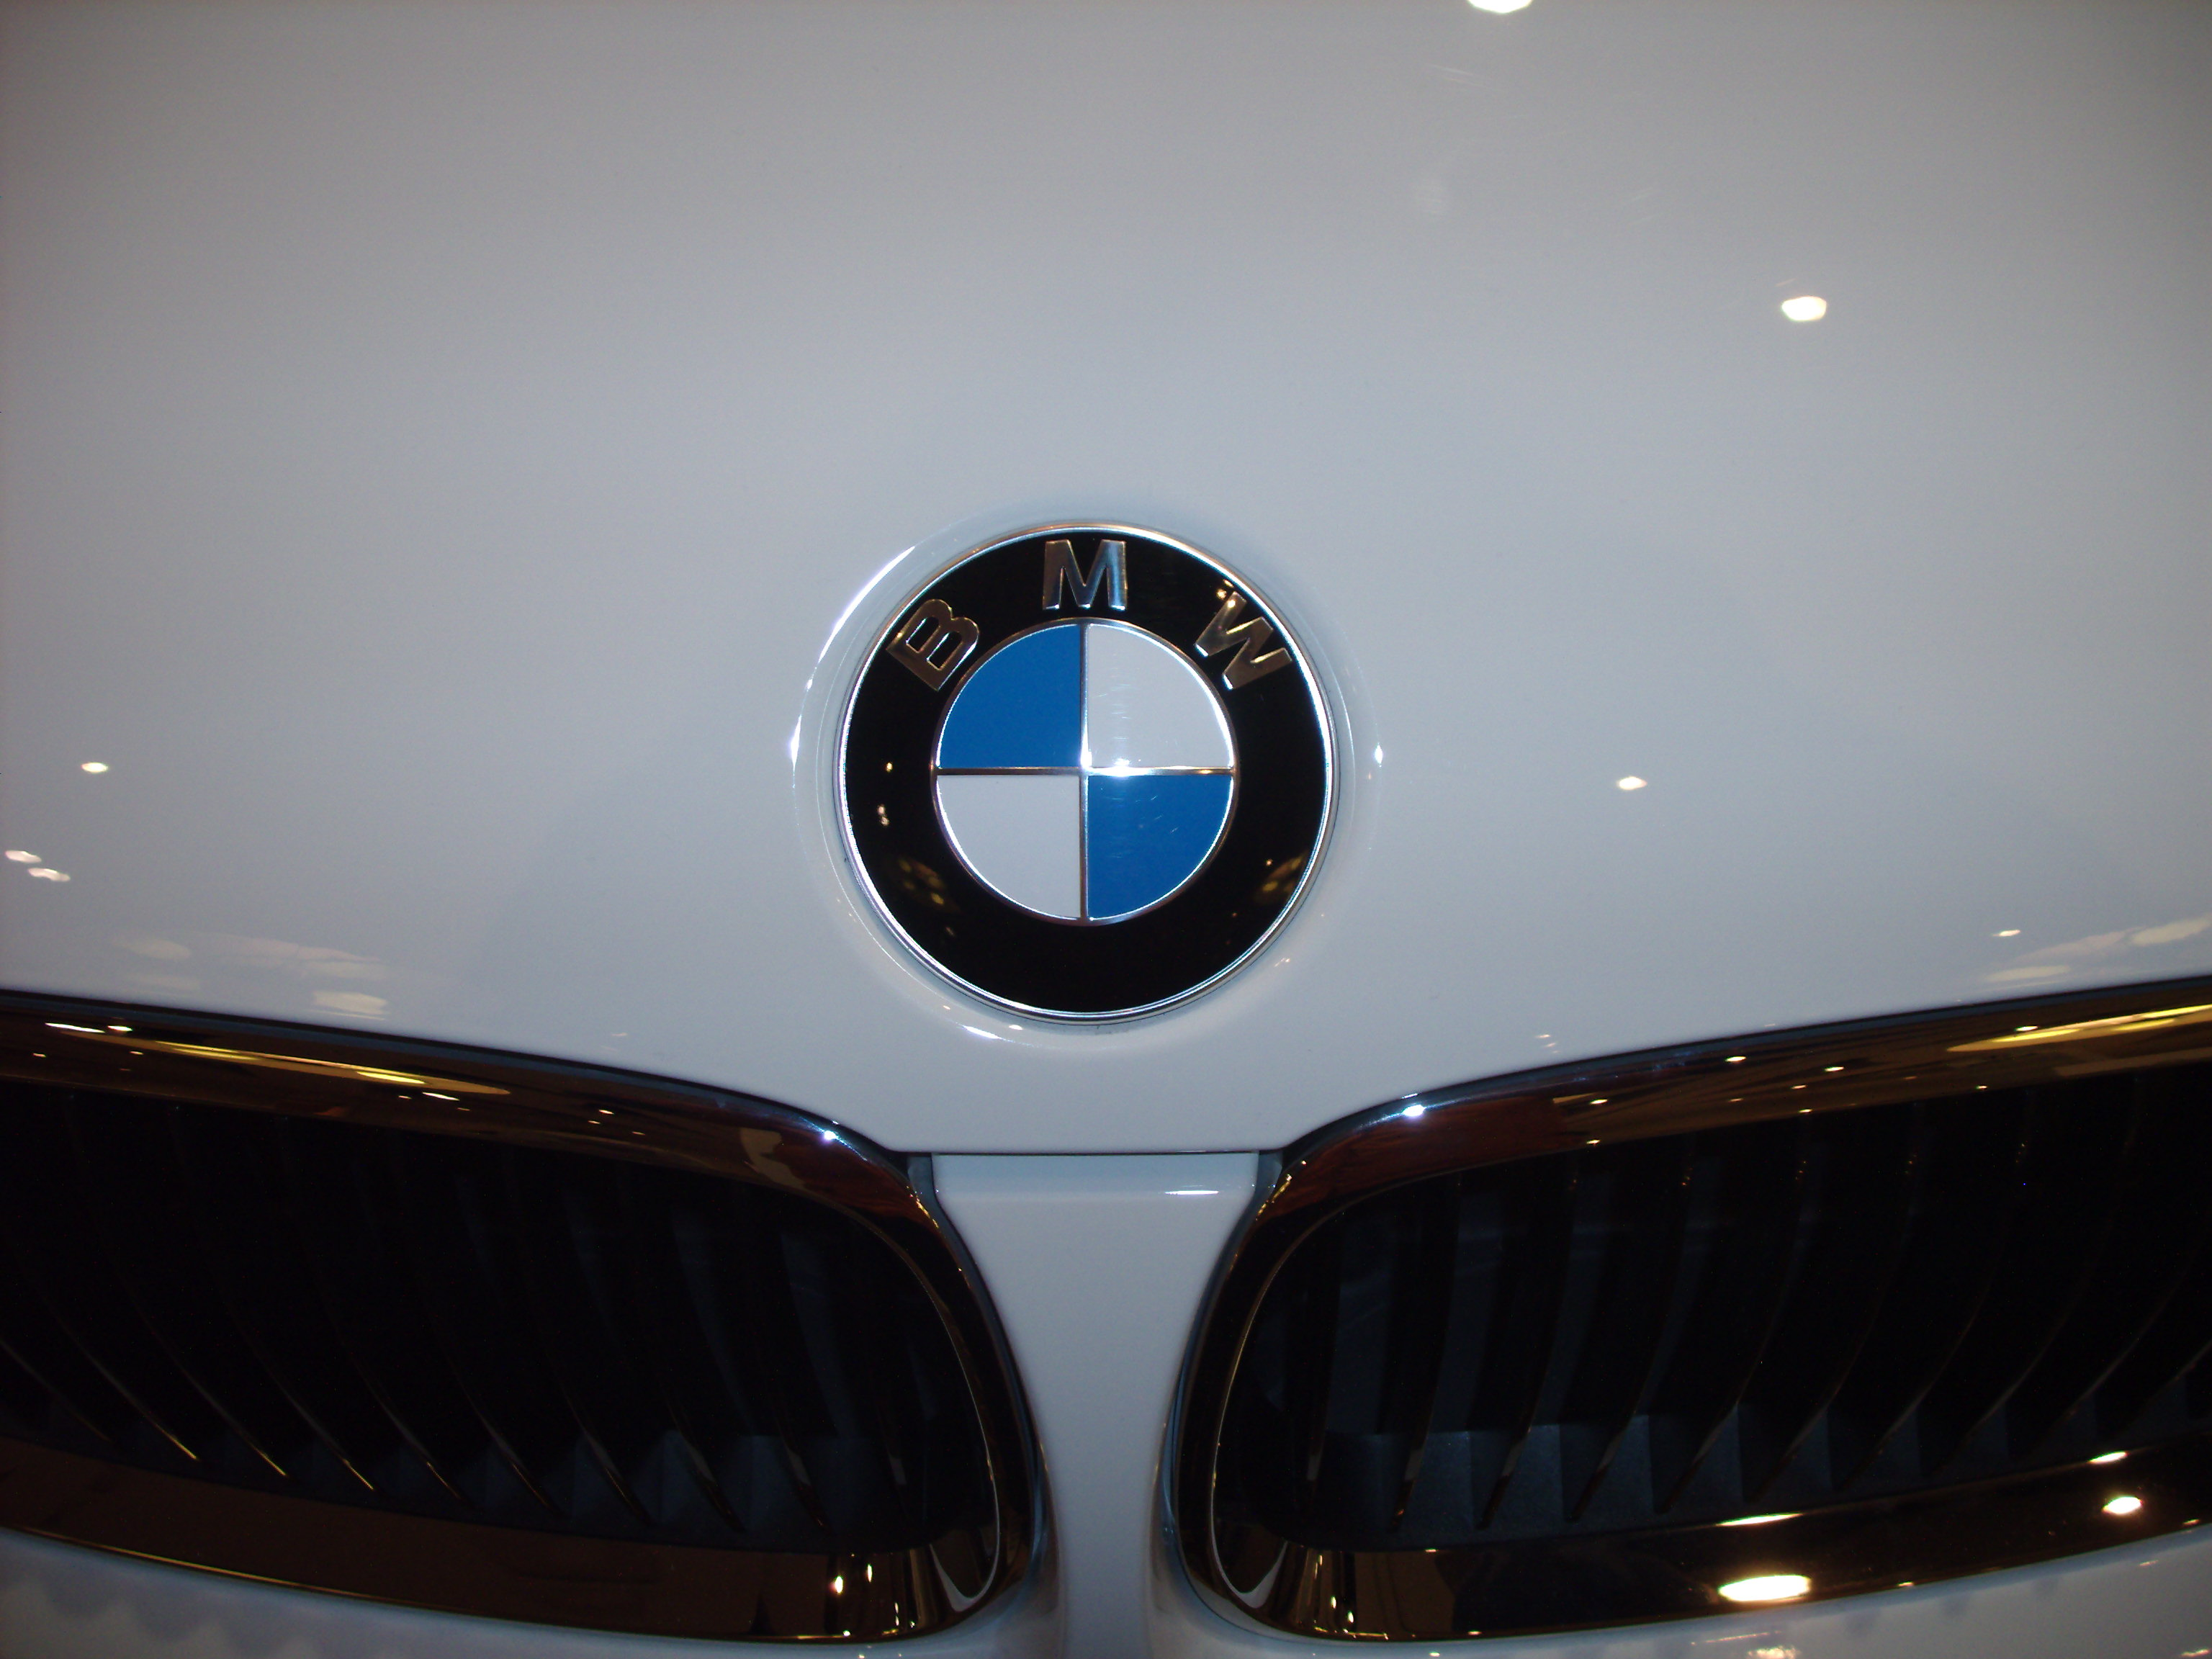 The round BMW logo used for all models